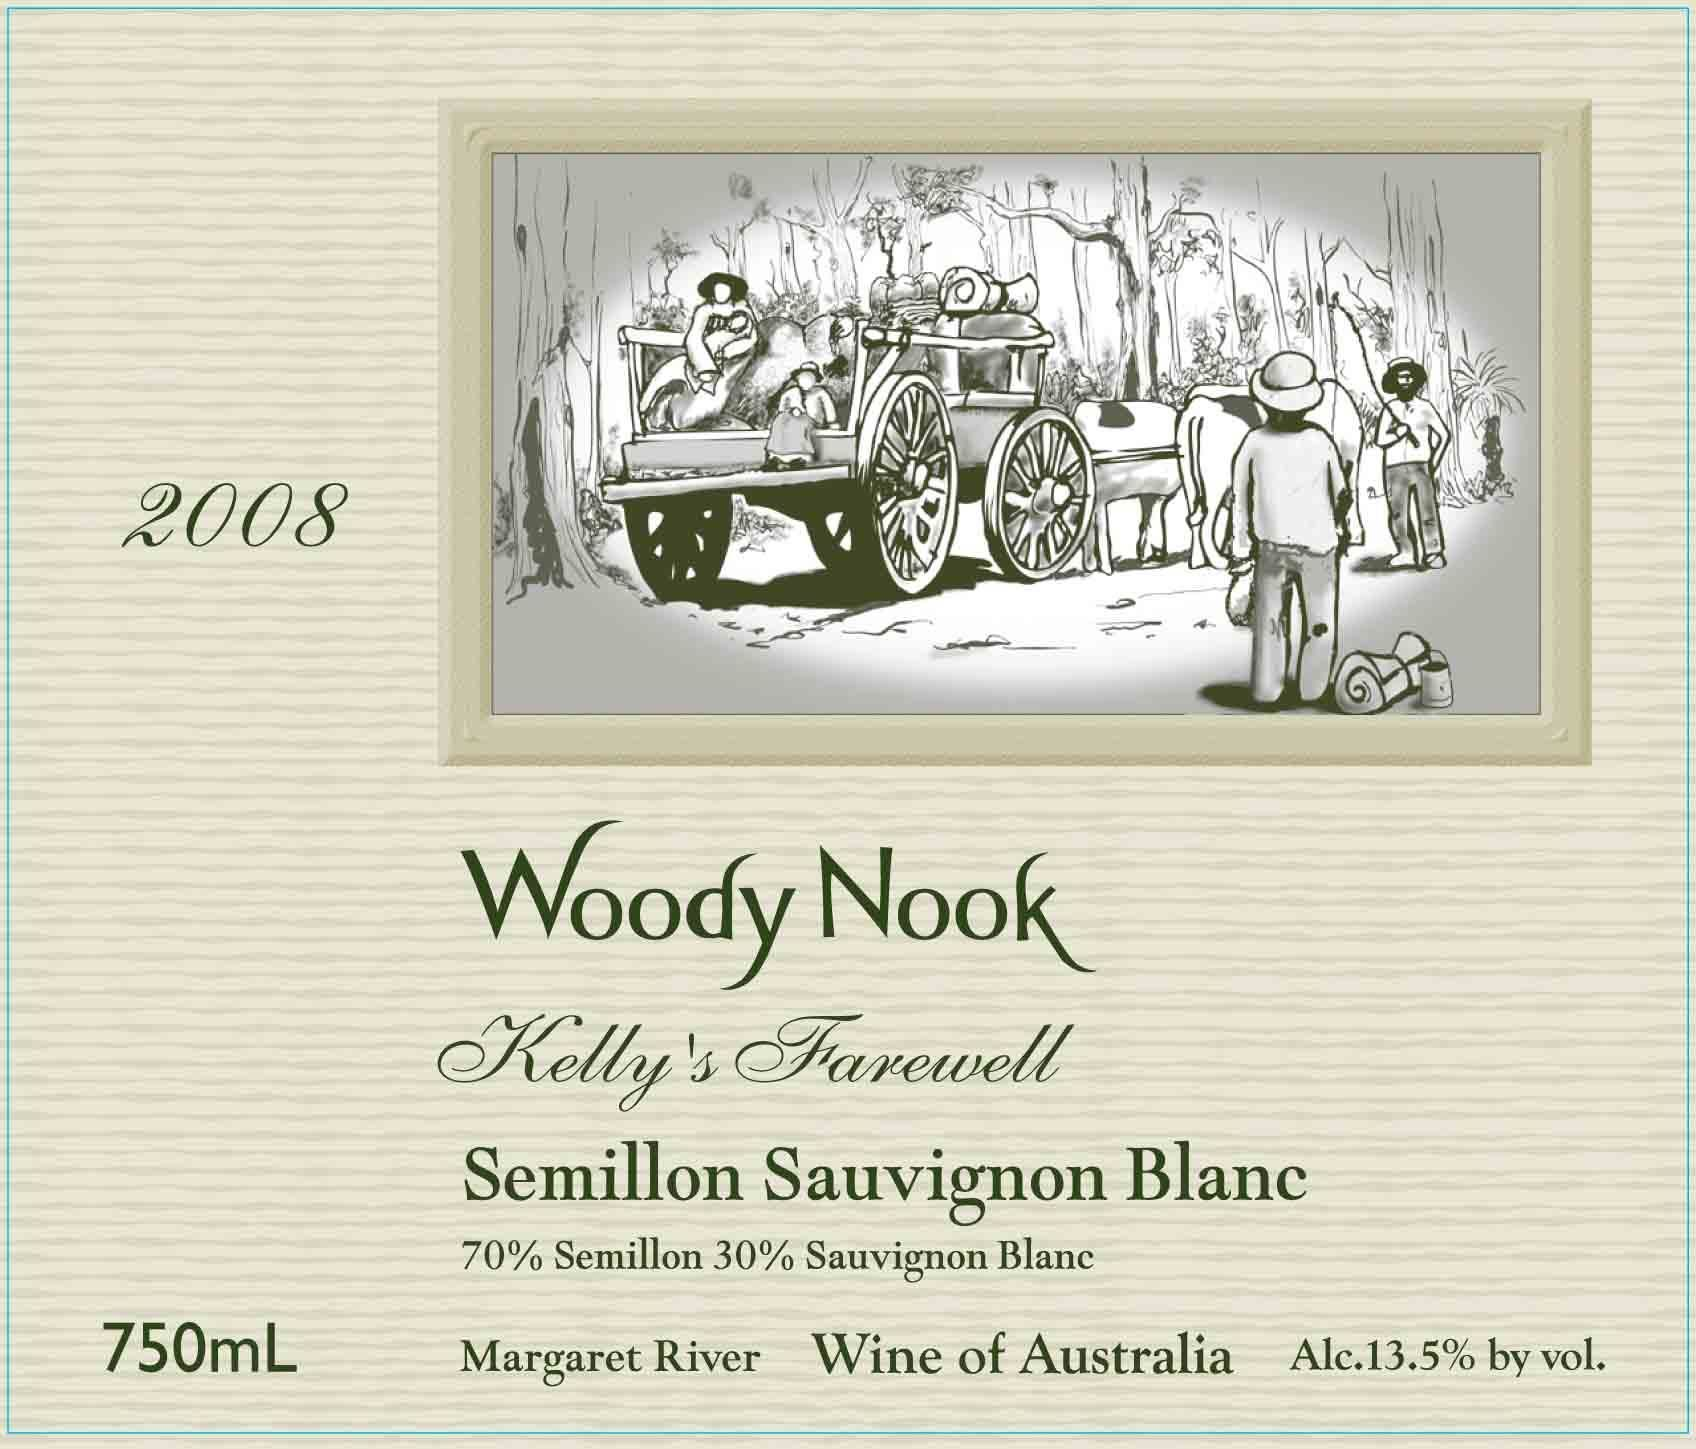 Woody Nook Kelly's Farewell Semillon Sauvignon Blanc 2008 Front Label